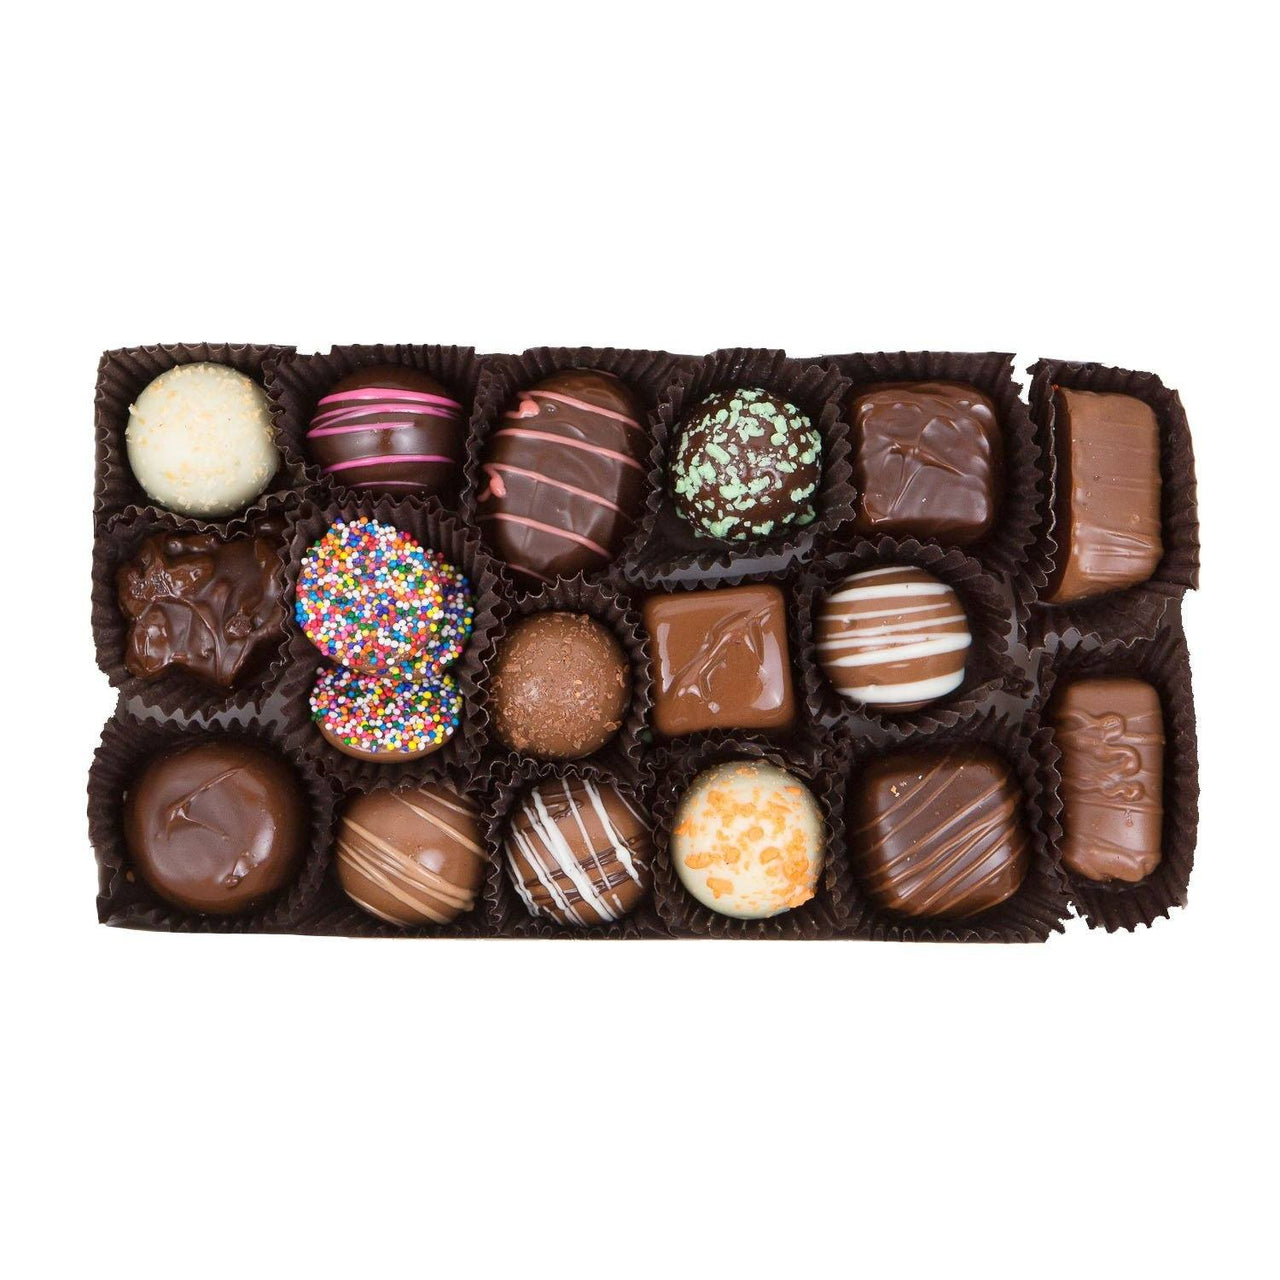 Romantic Christmas Gifts  - Chocolate Assortment Gift Box - Jackie's Chocolate (4336370778227)